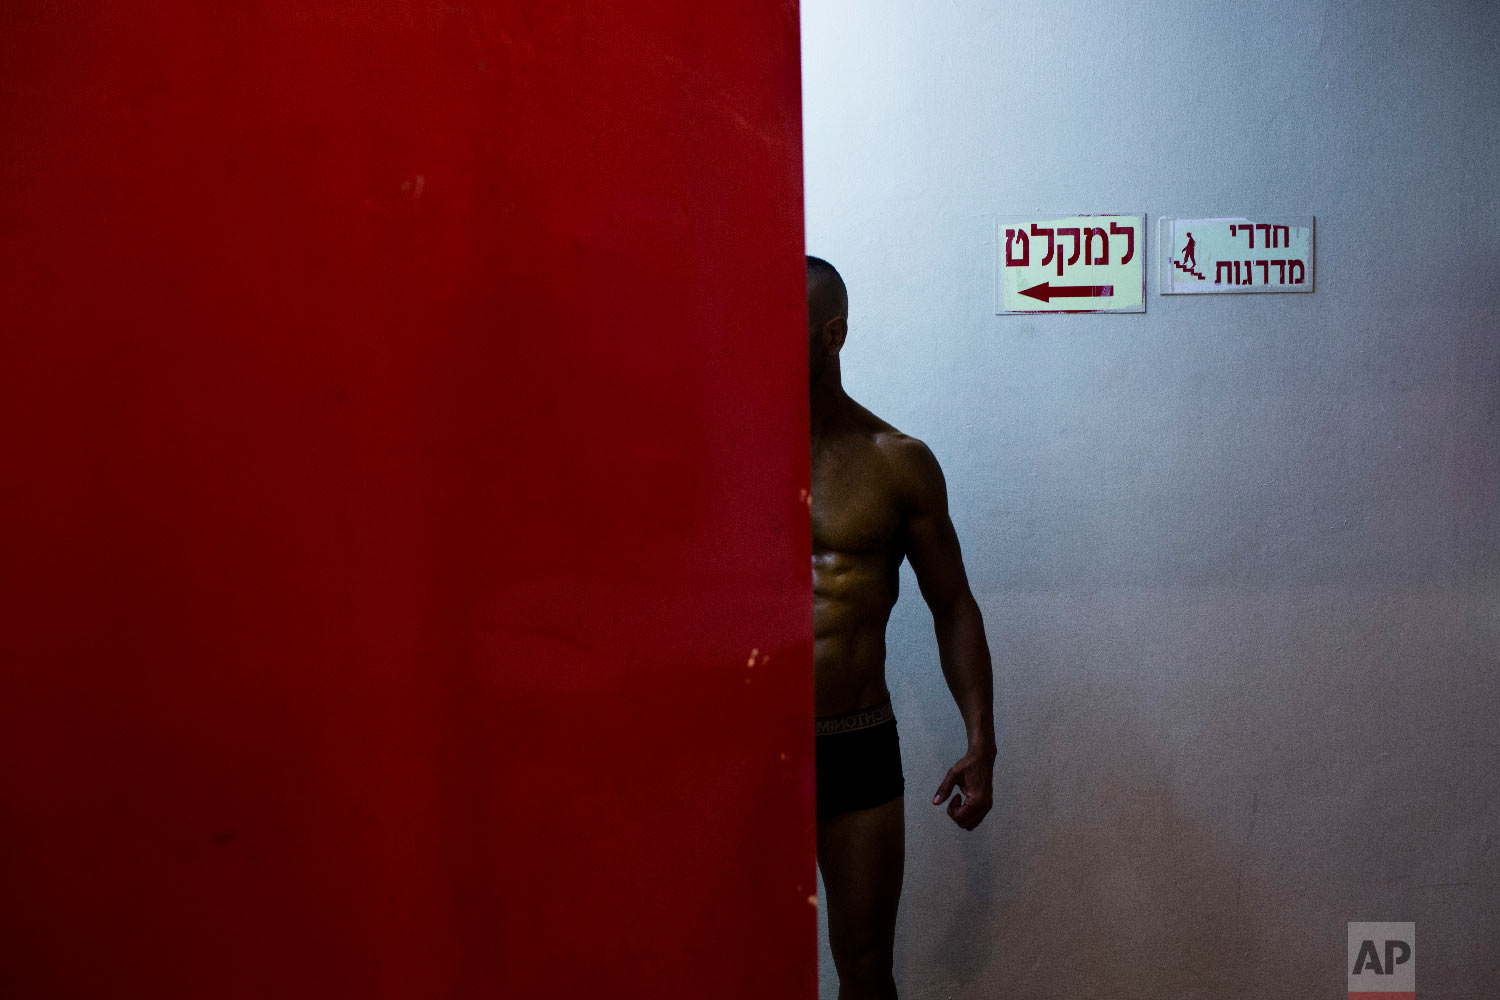 A contestant has his body painted backstage during the National Amateur Body Builders' Association competition in Tel Aviv, Israel on Oct. 18, 2018. (AP Photo/Oded Balilty)